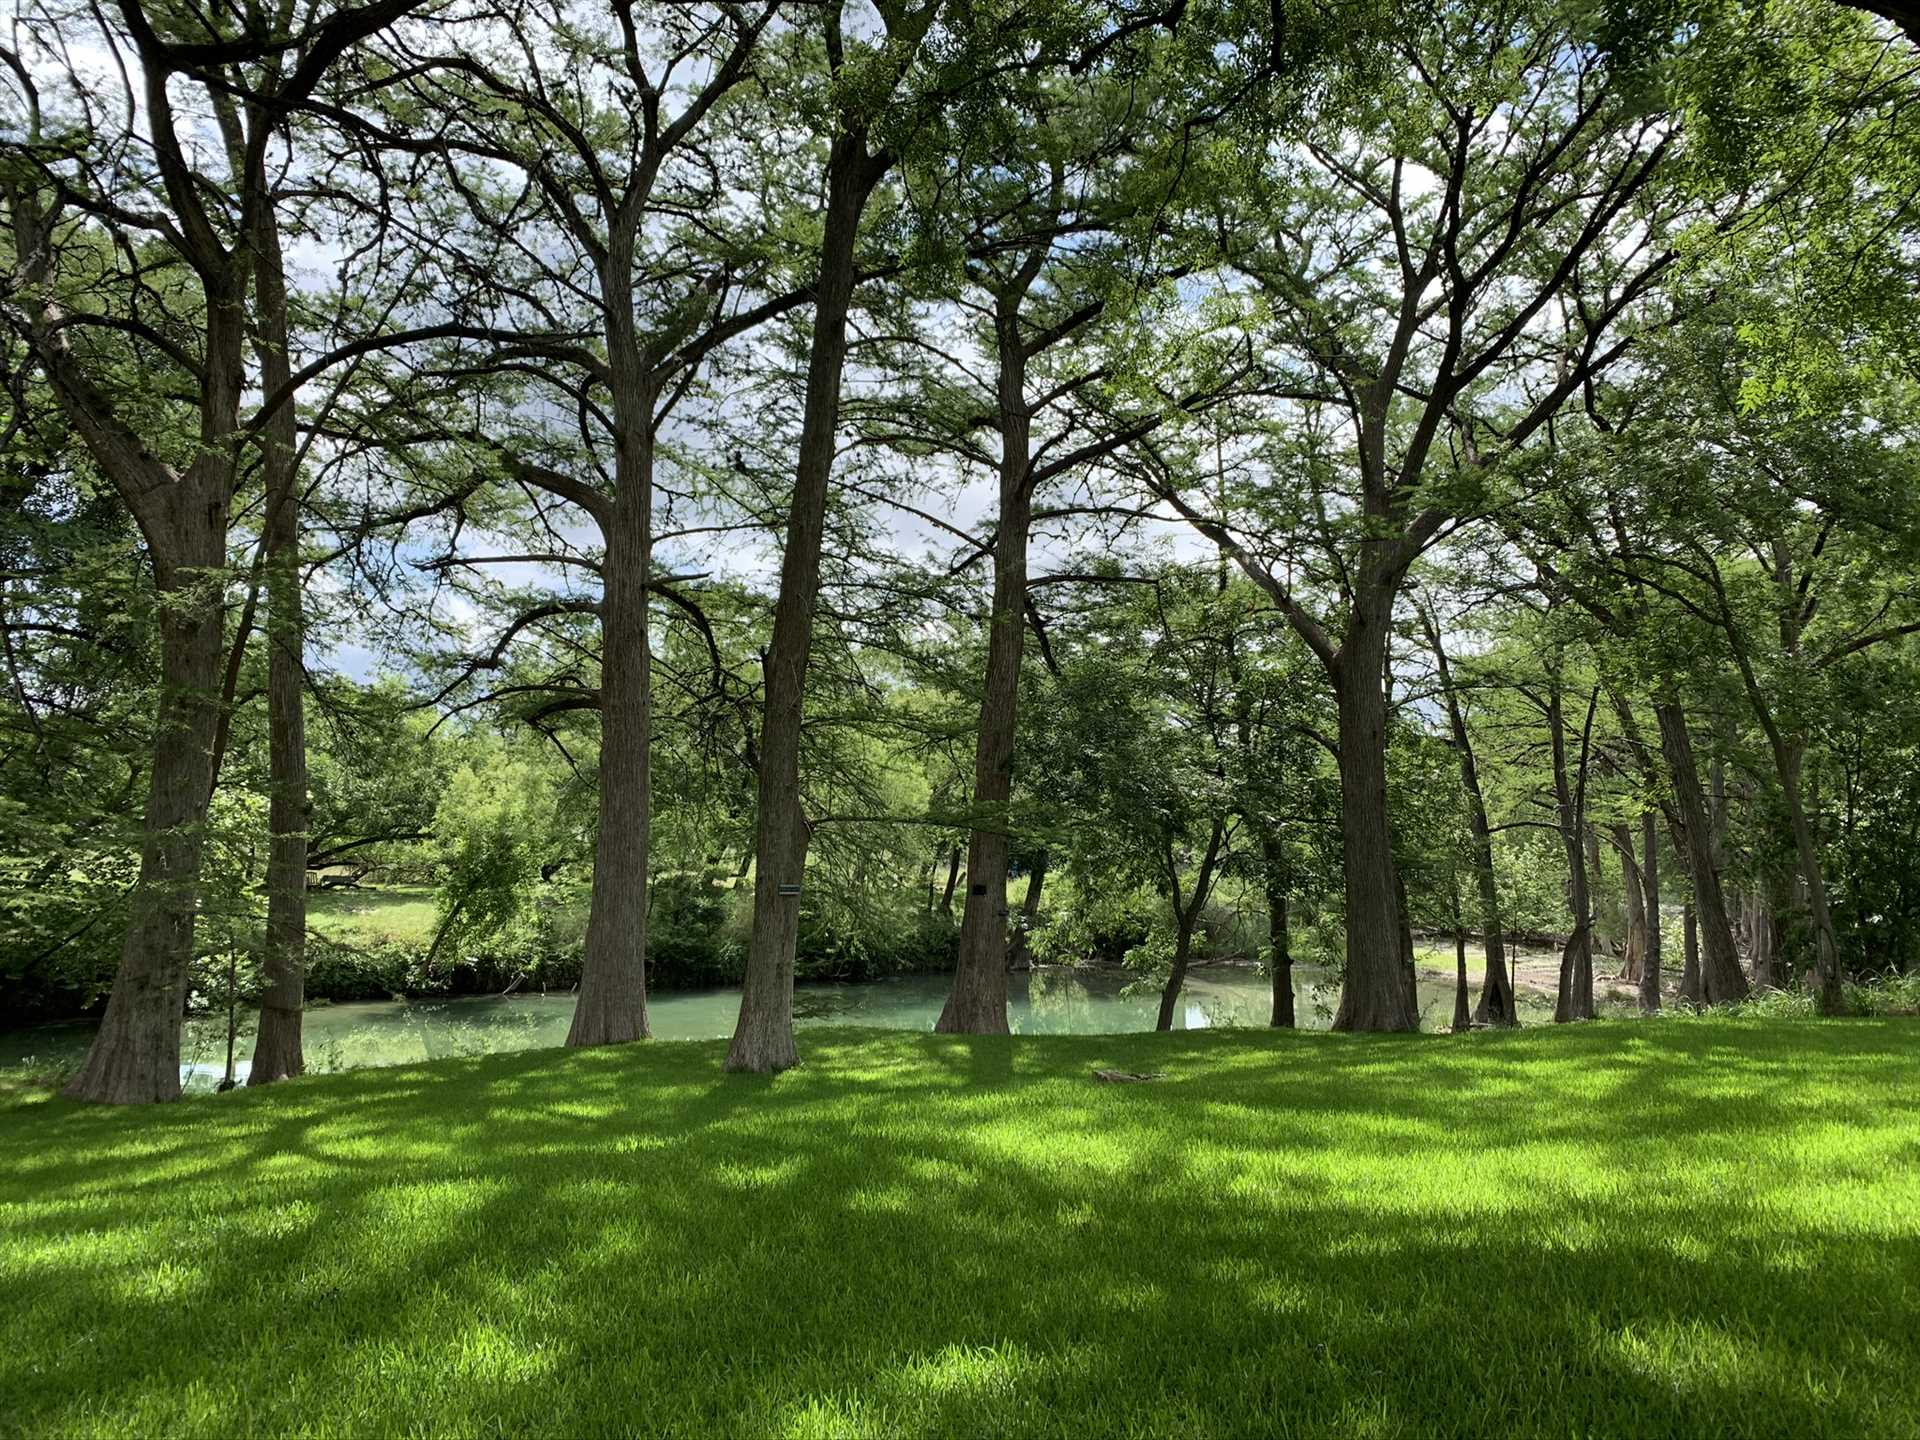 The riverside setting is a paradise for nature lovers-and, what's more, the Hill Country State Natural Area is close by, too!